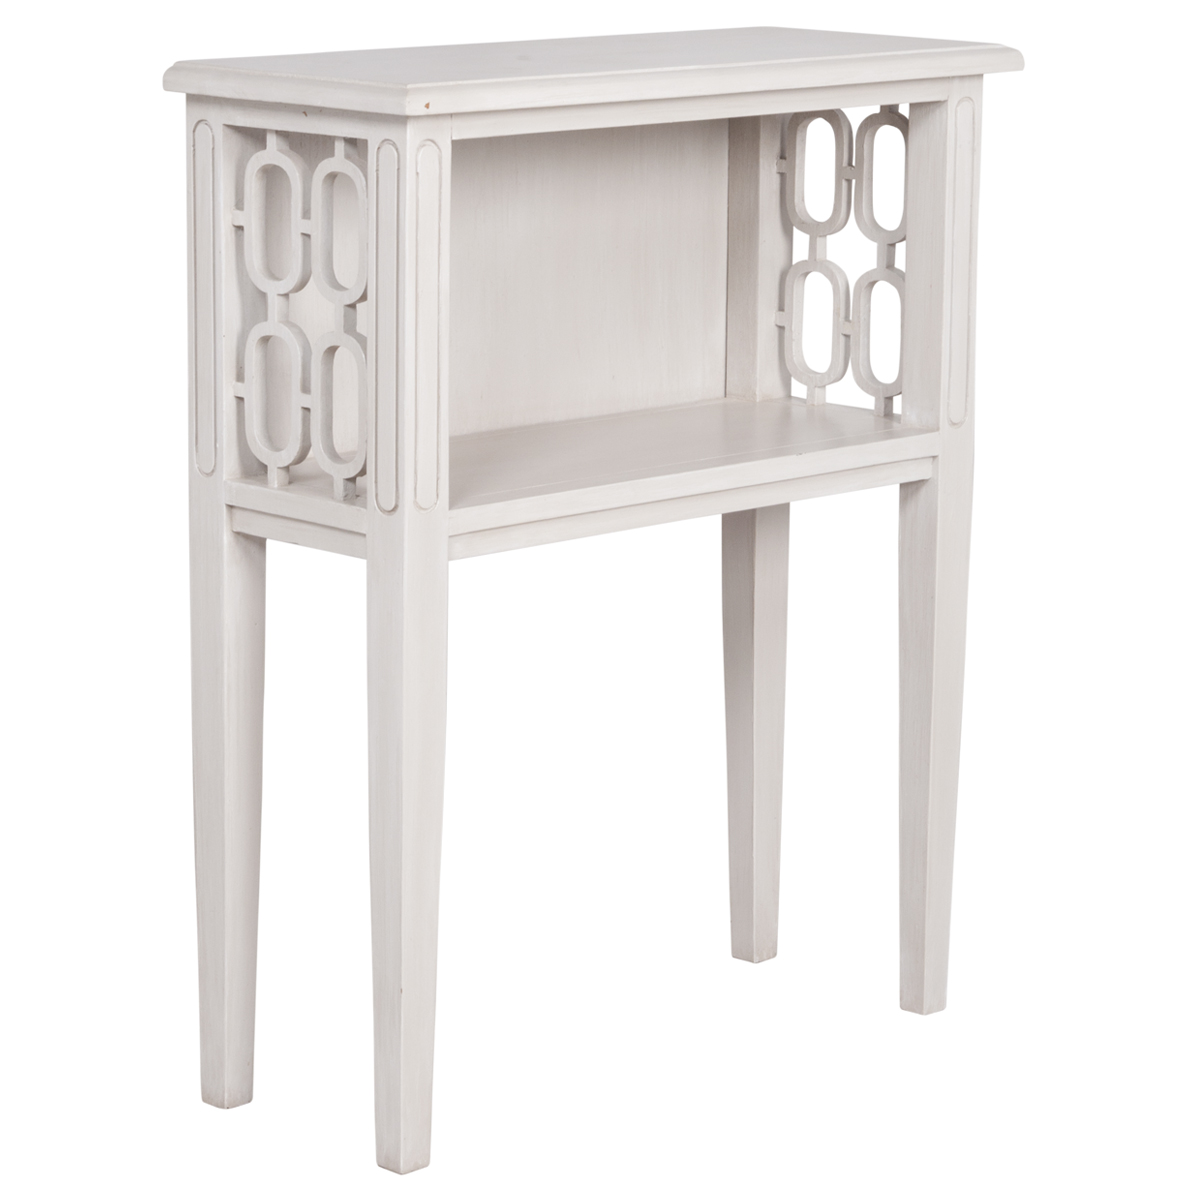 end tables interesting white wooden tall with drawer small table side drawers nrhcares ideas for show coffee furniture semi circle accent walnut round wood inspirations dark and